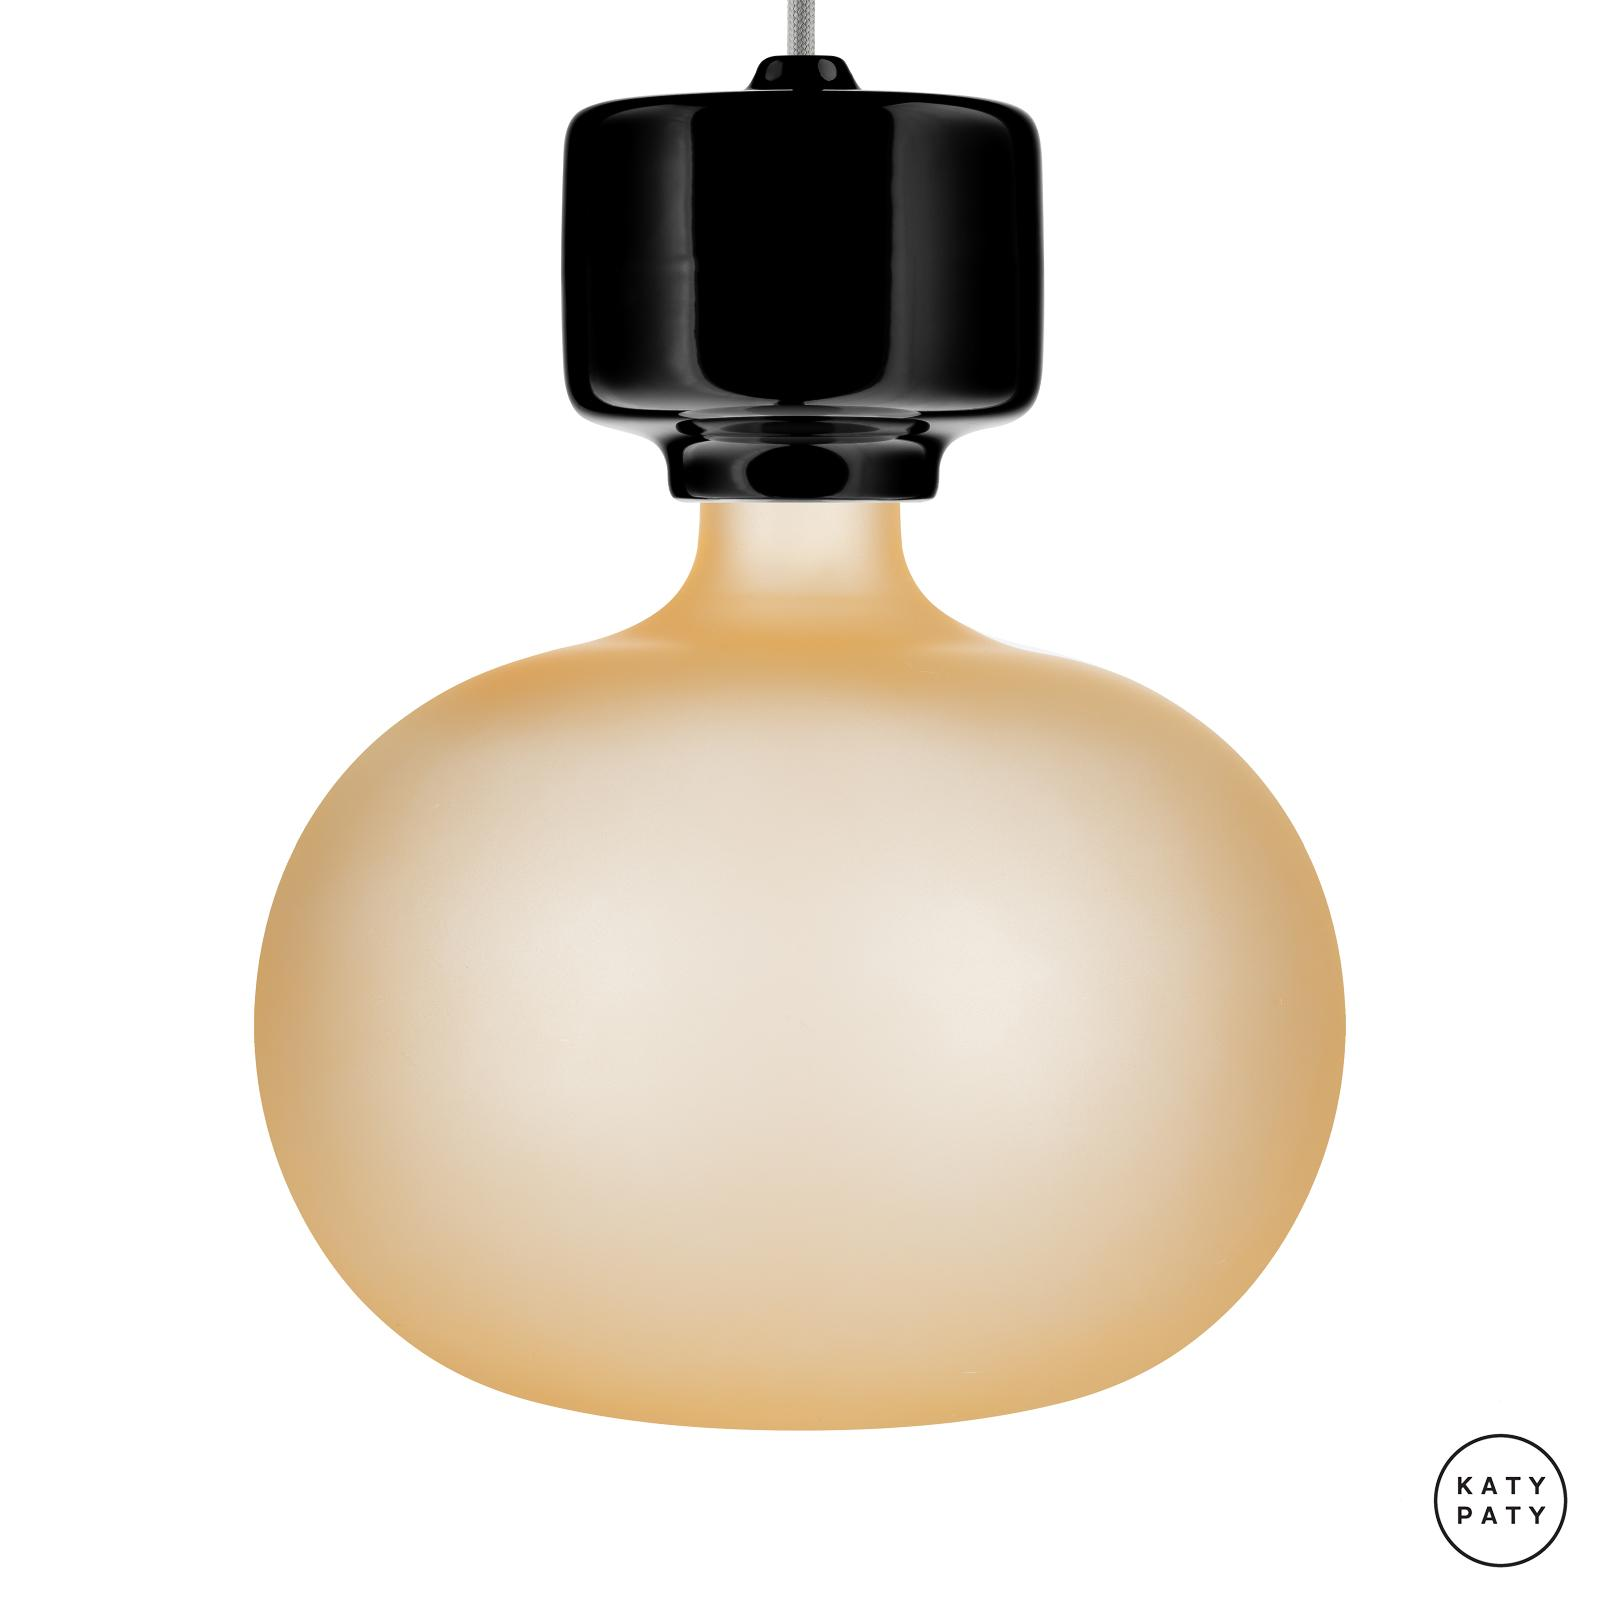 Atmosfera- light bulbs KATY PATY ()  -  | Katy Paty